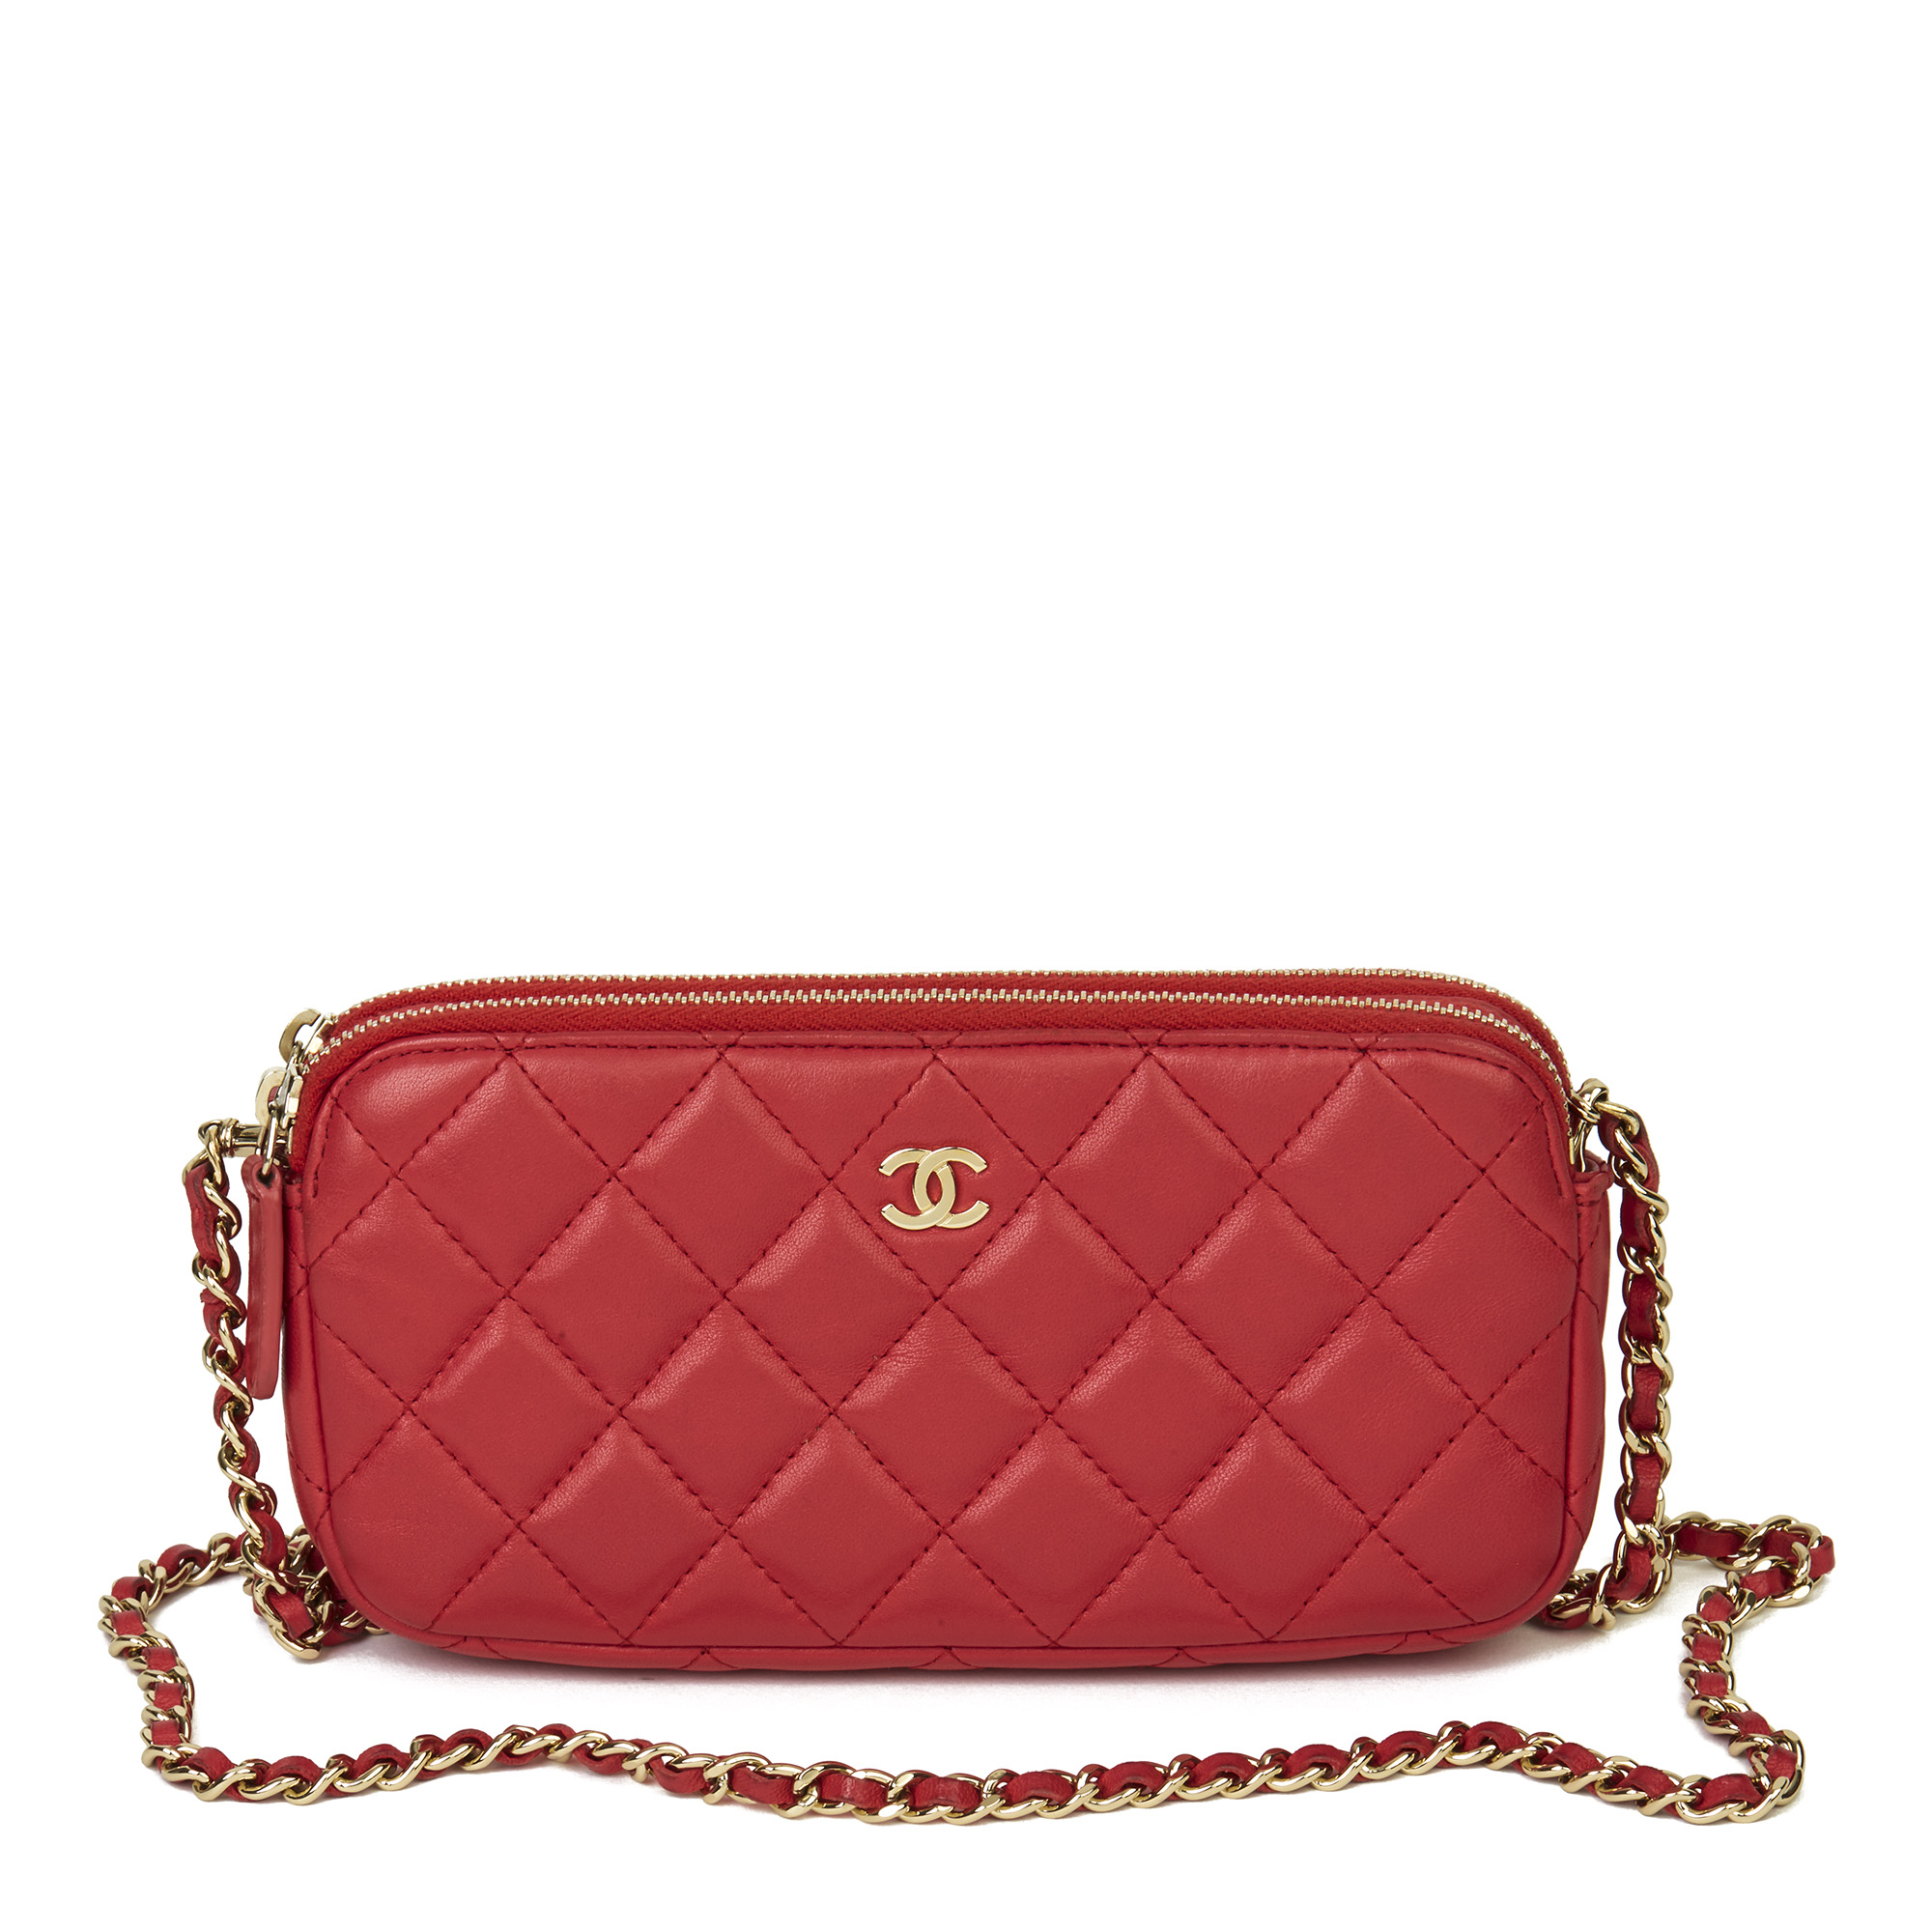 Chanel Red Quilted Lambskin Double Zip Wallet-on-Chain WOC